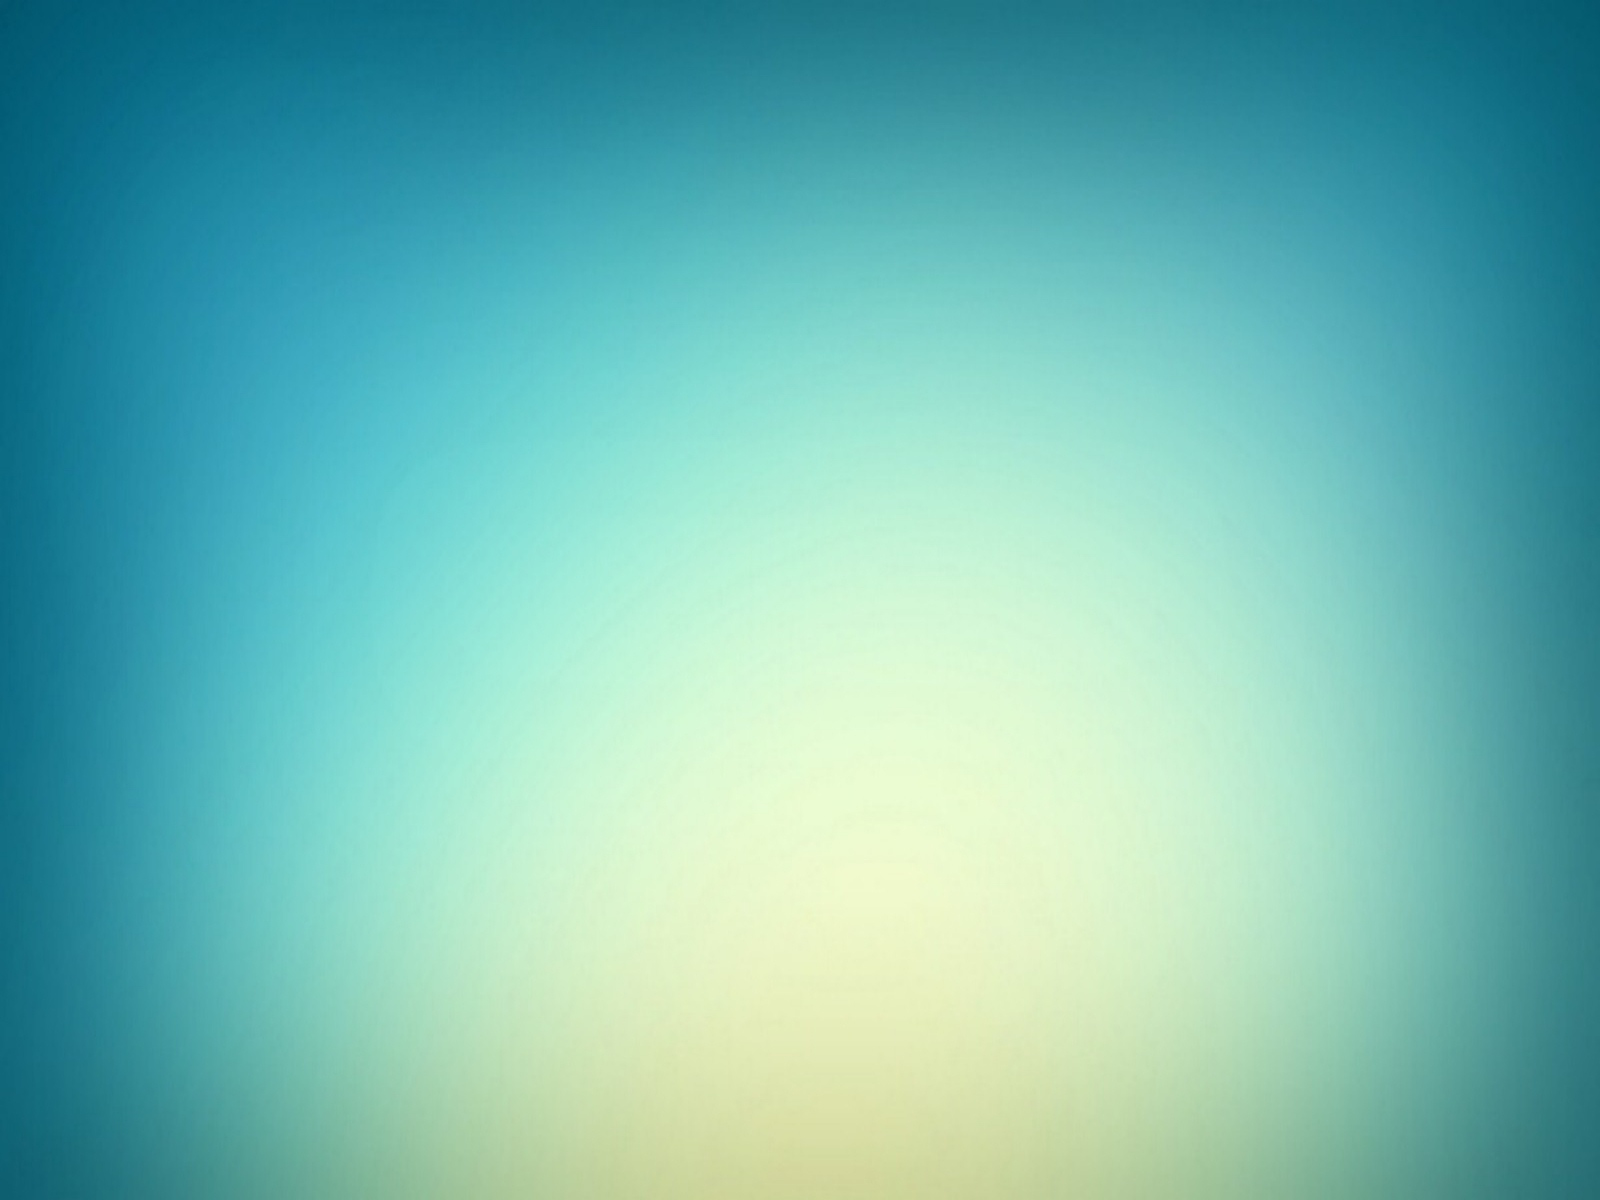 Free Simple Backgrounds